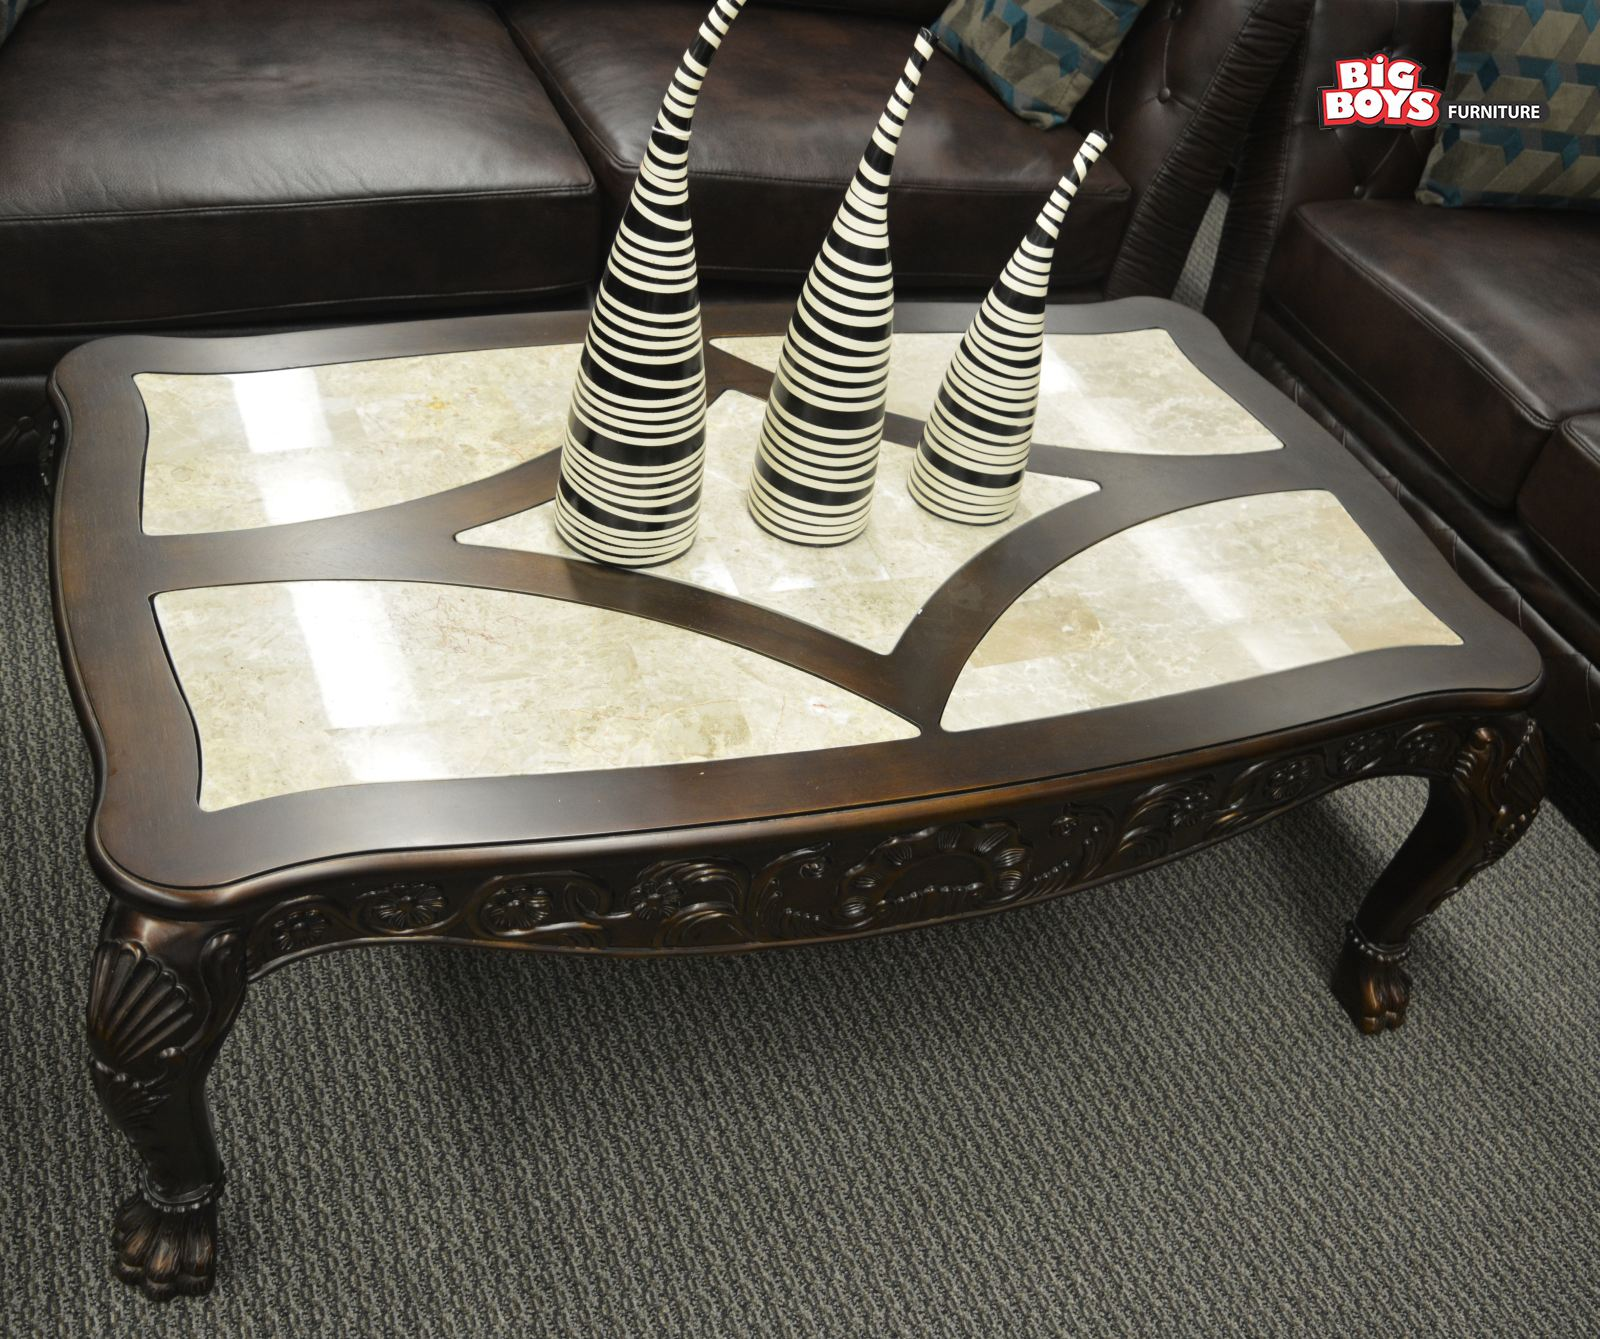 Big Boys Furniture offer best prices on Center Tables